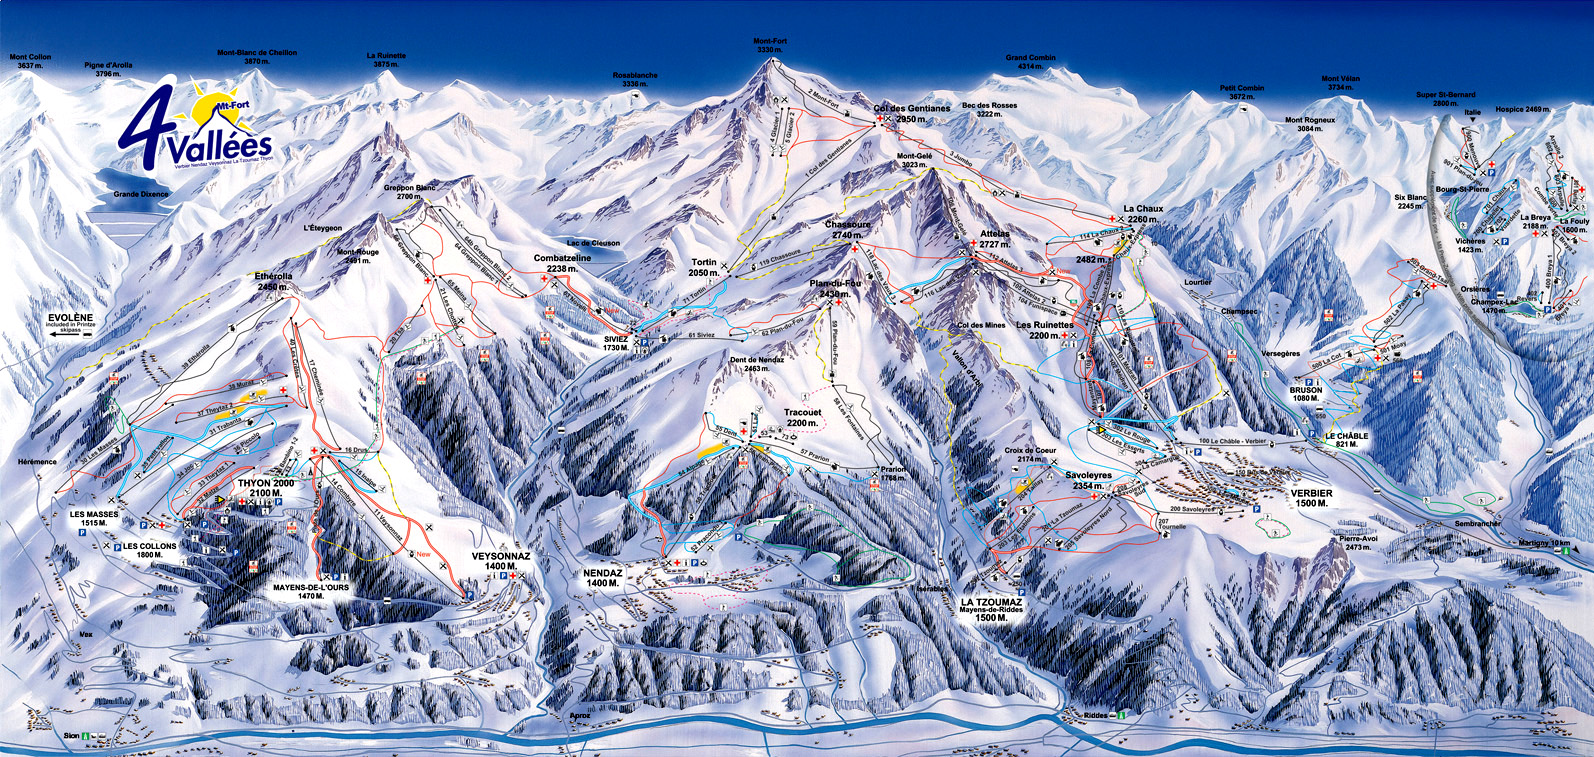 4-vallees - ski map